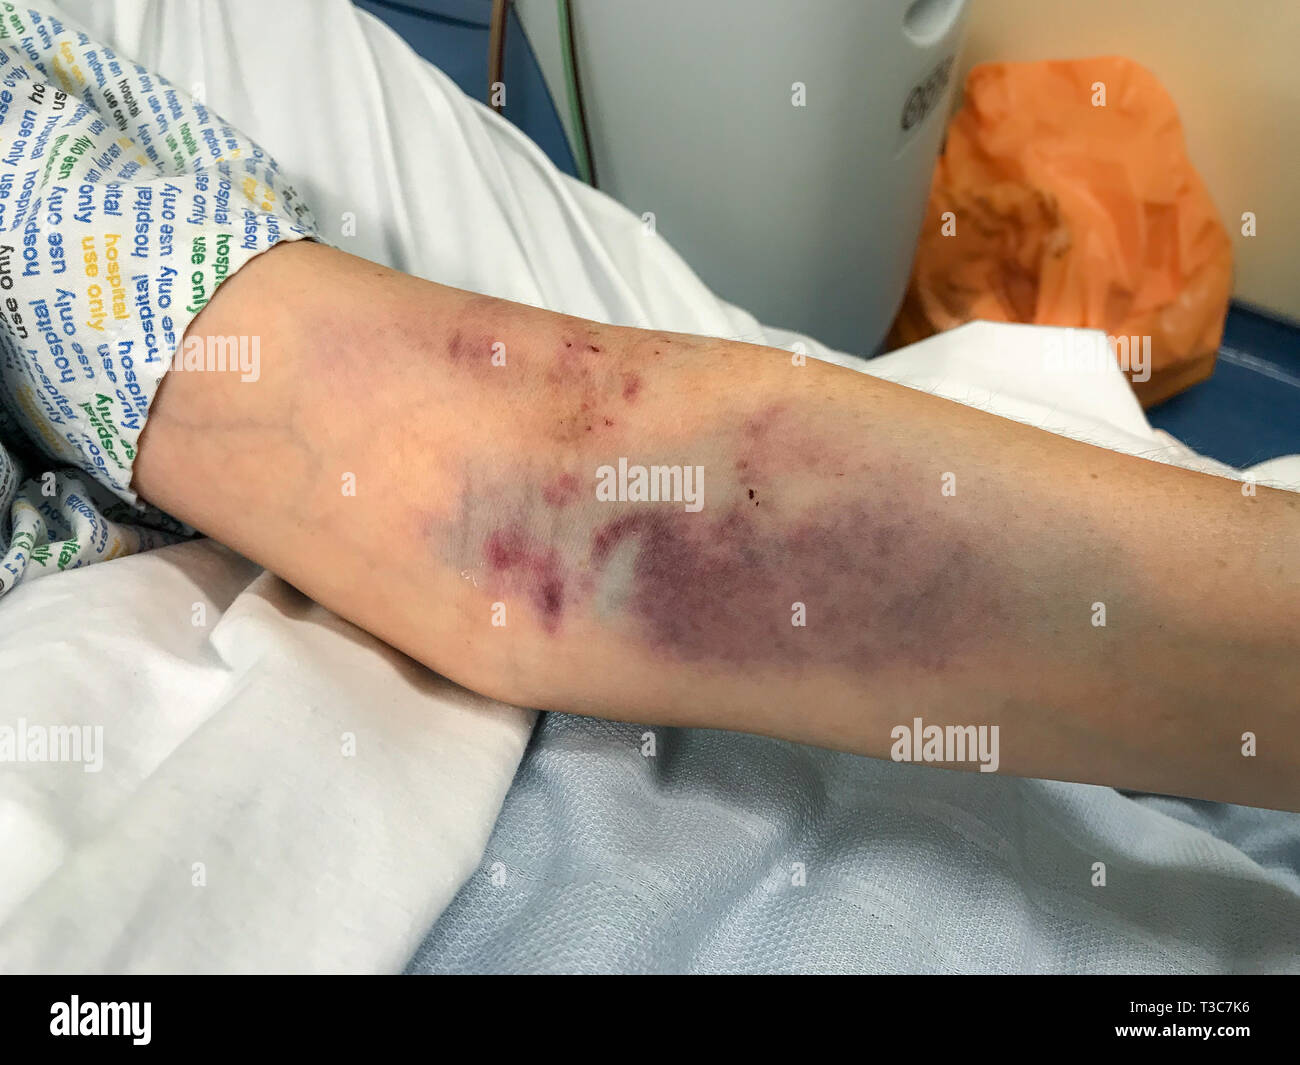 A close up of a woman's arm badly bruised from several attempts at drawing blood, the edge of the hospital gown can just be seen. - Stock Image